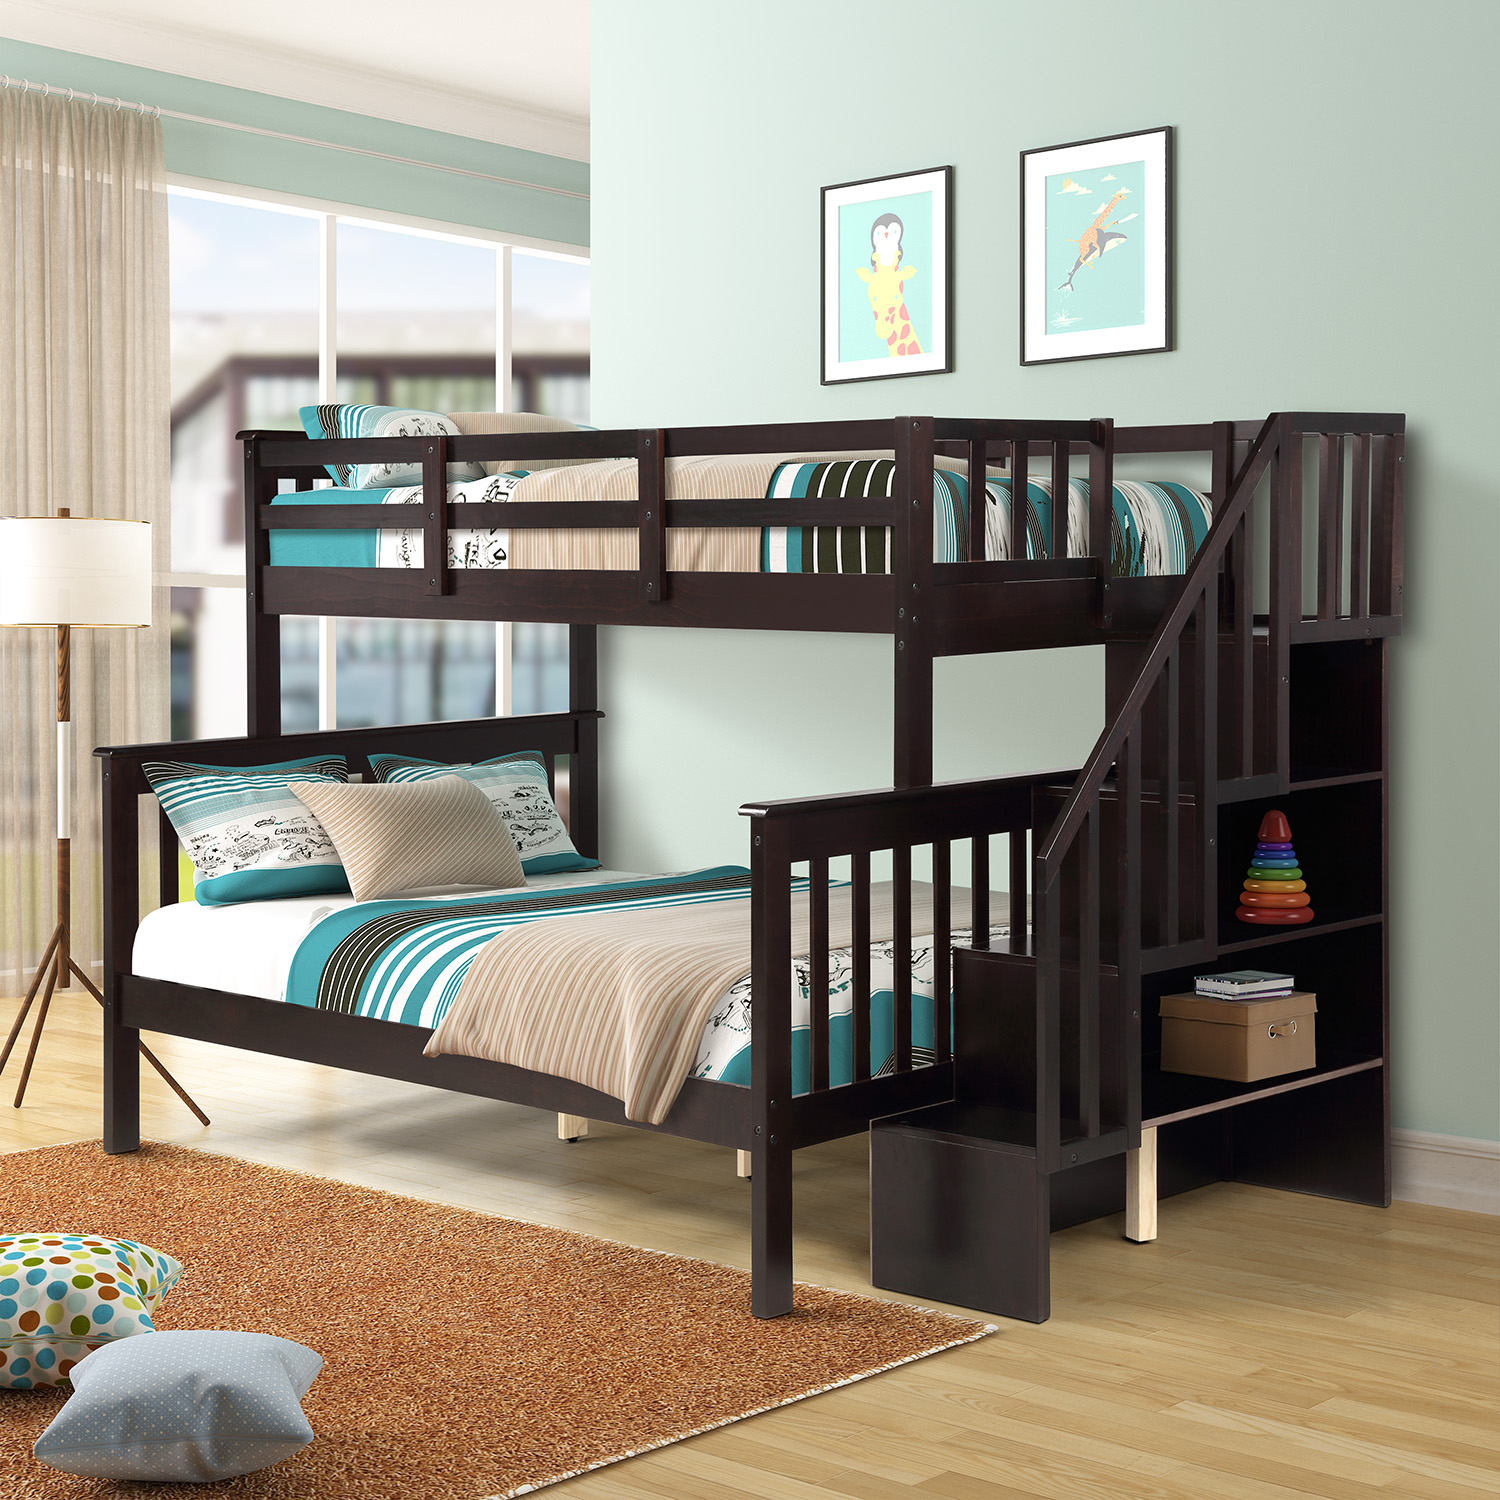 Bunk Bedideas: Twin-Over-Full Stairway Bunk Bed For Kids, Space Saving